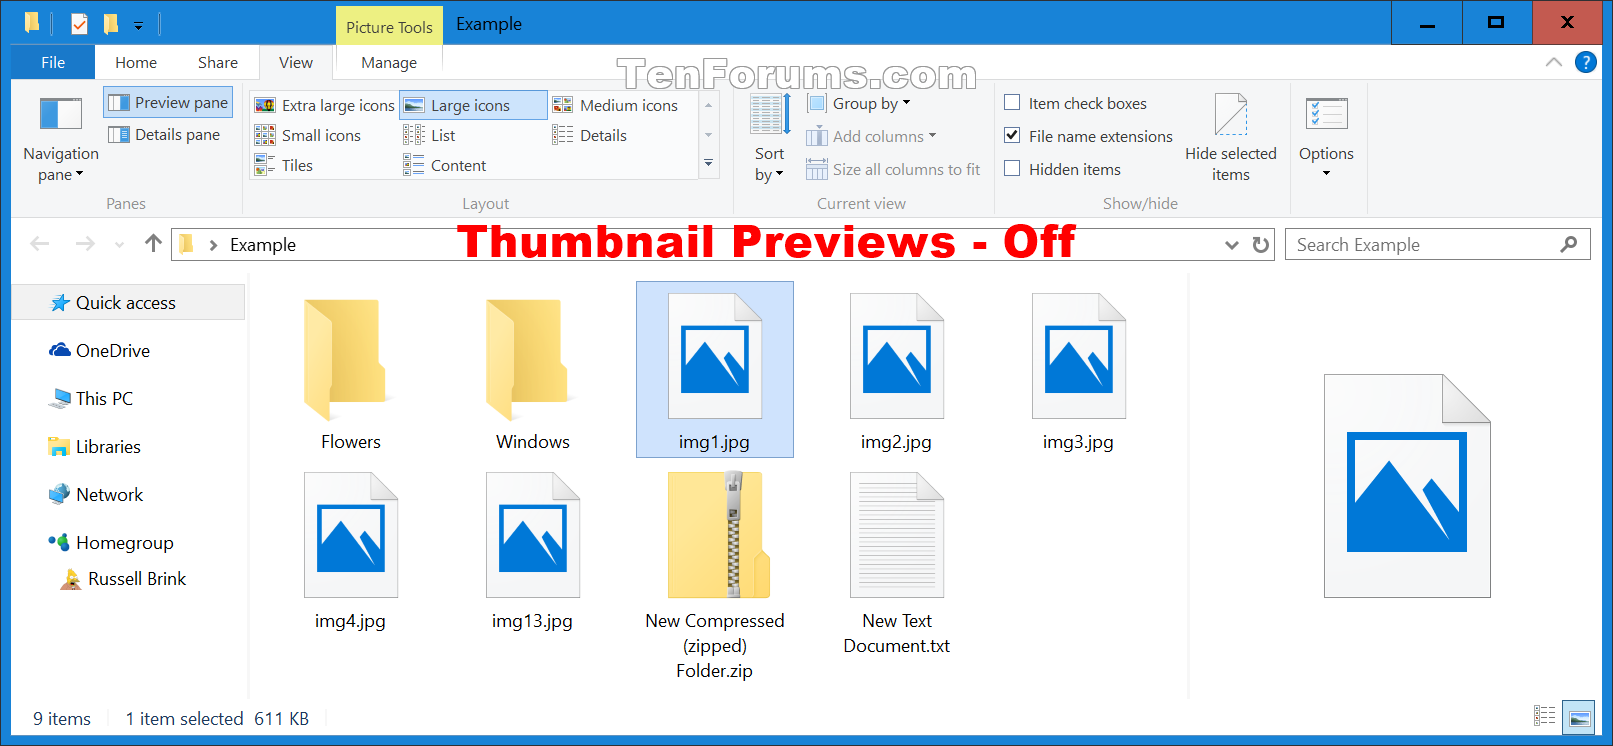 Thumbnail Previews File Explorer Enable Disable Windows 10 Off The One Detail You Never